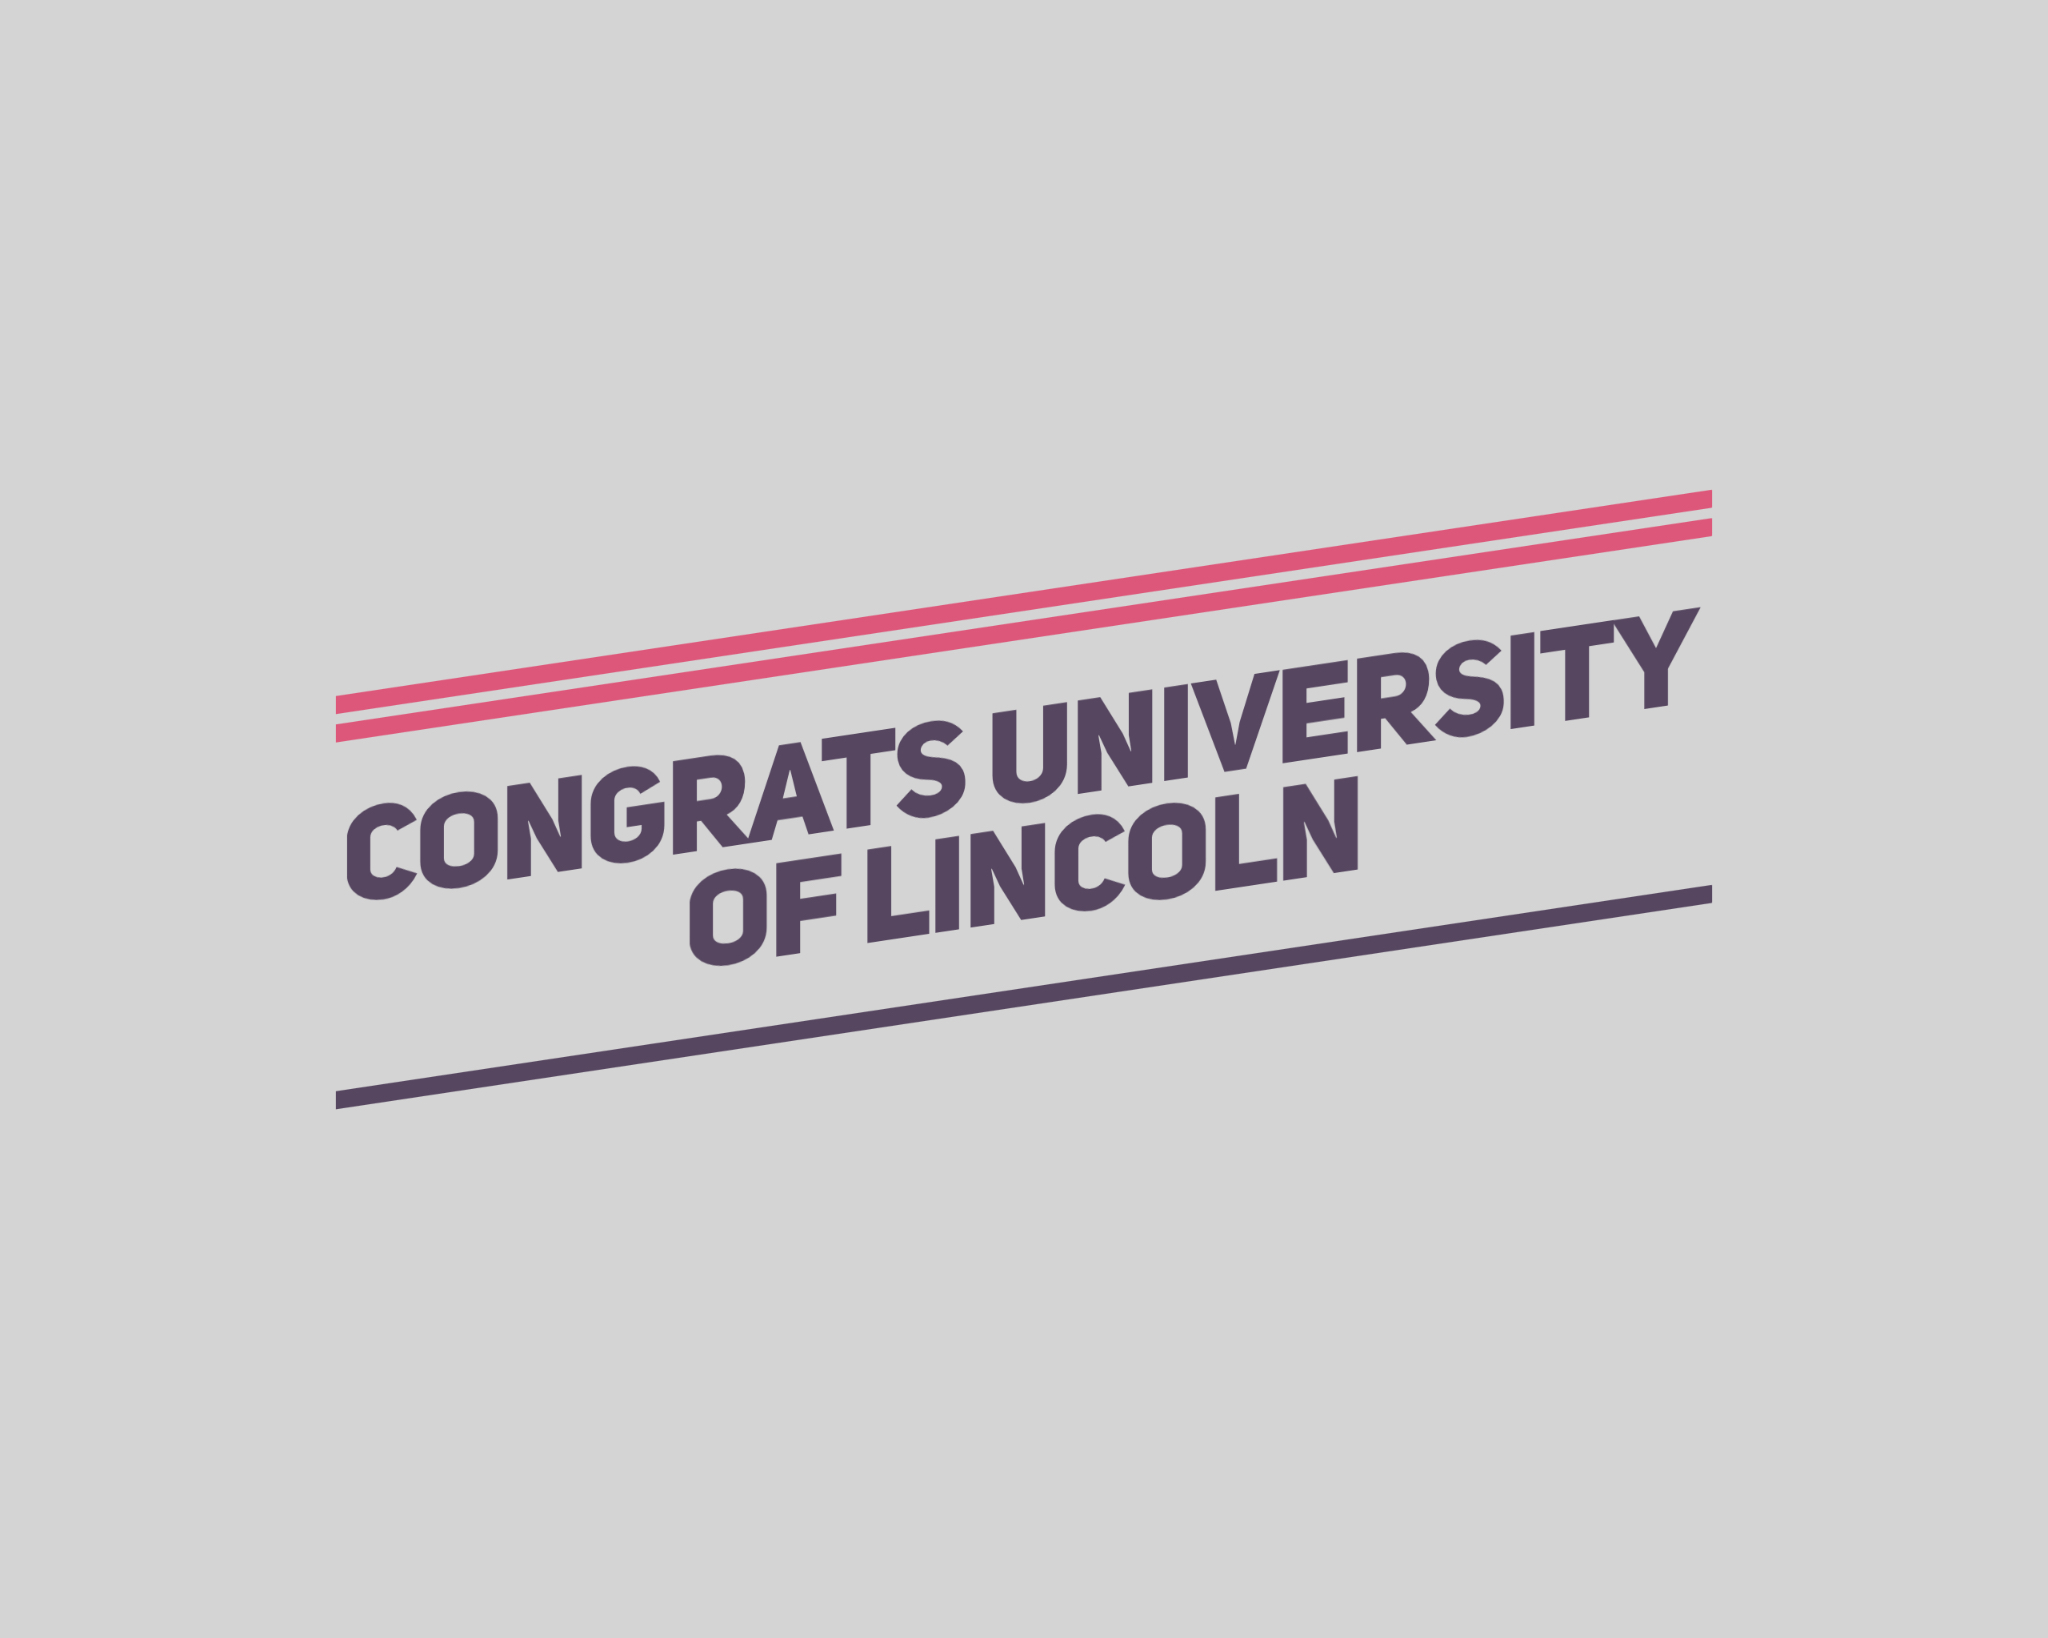 Congrats University of Lincoln